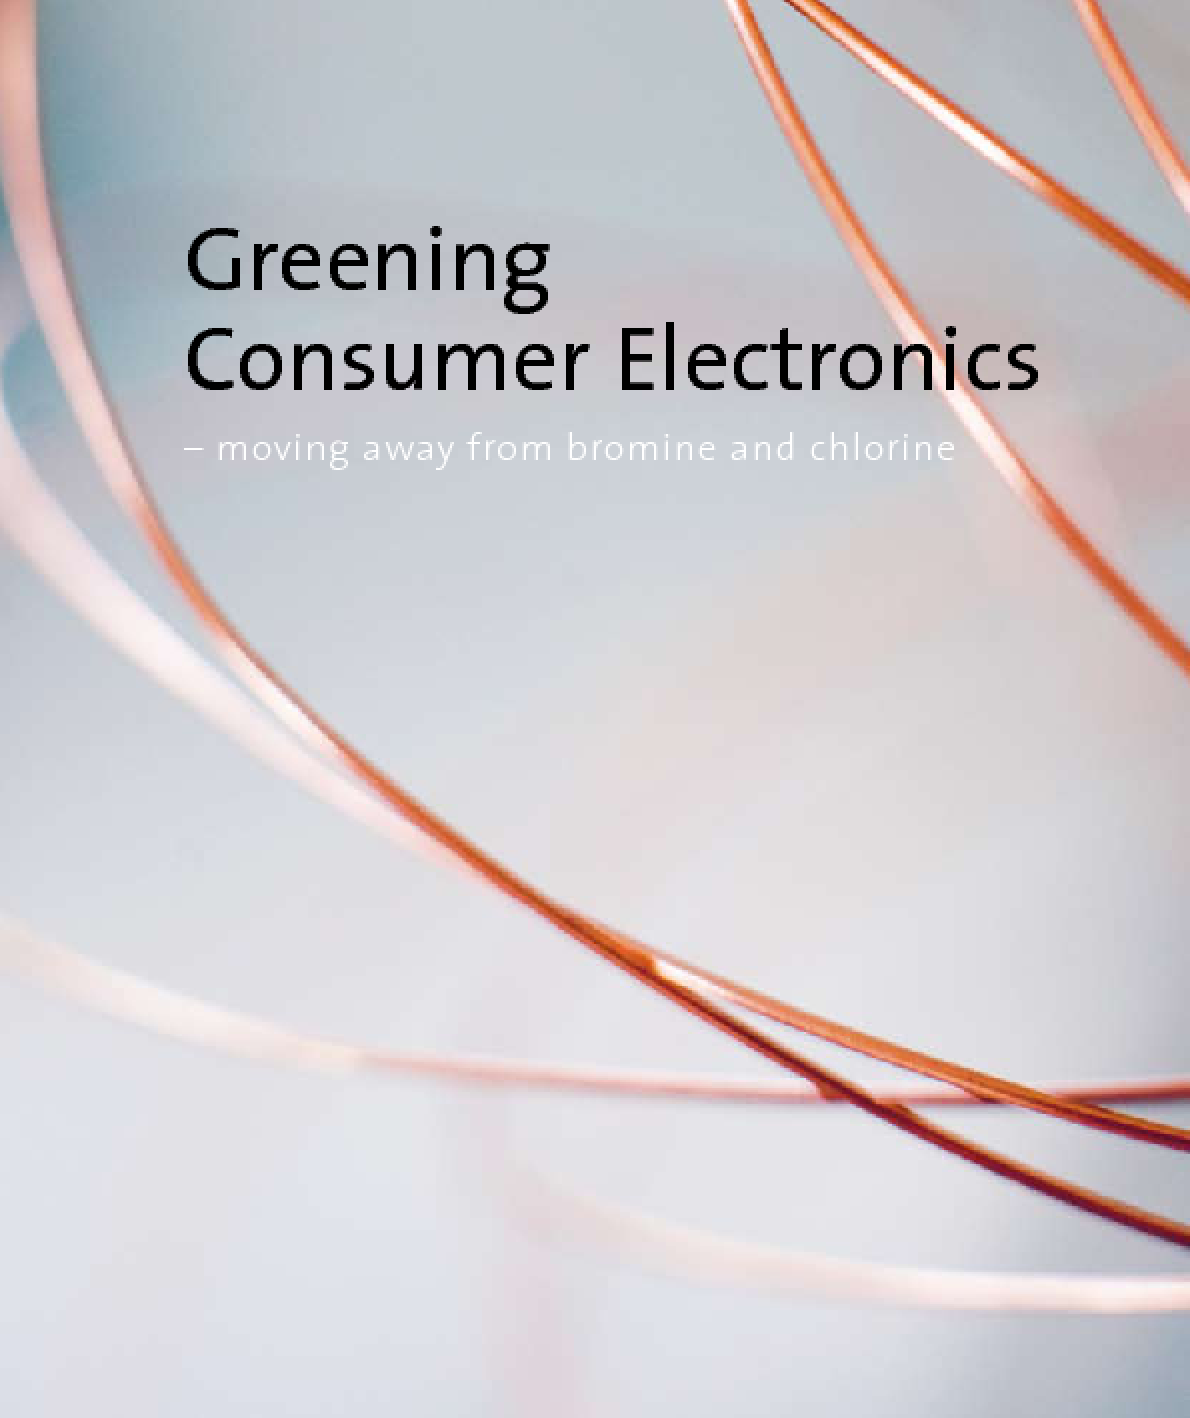 Greening Consumer Electronics: Moving Away From Bromine and Chlorine